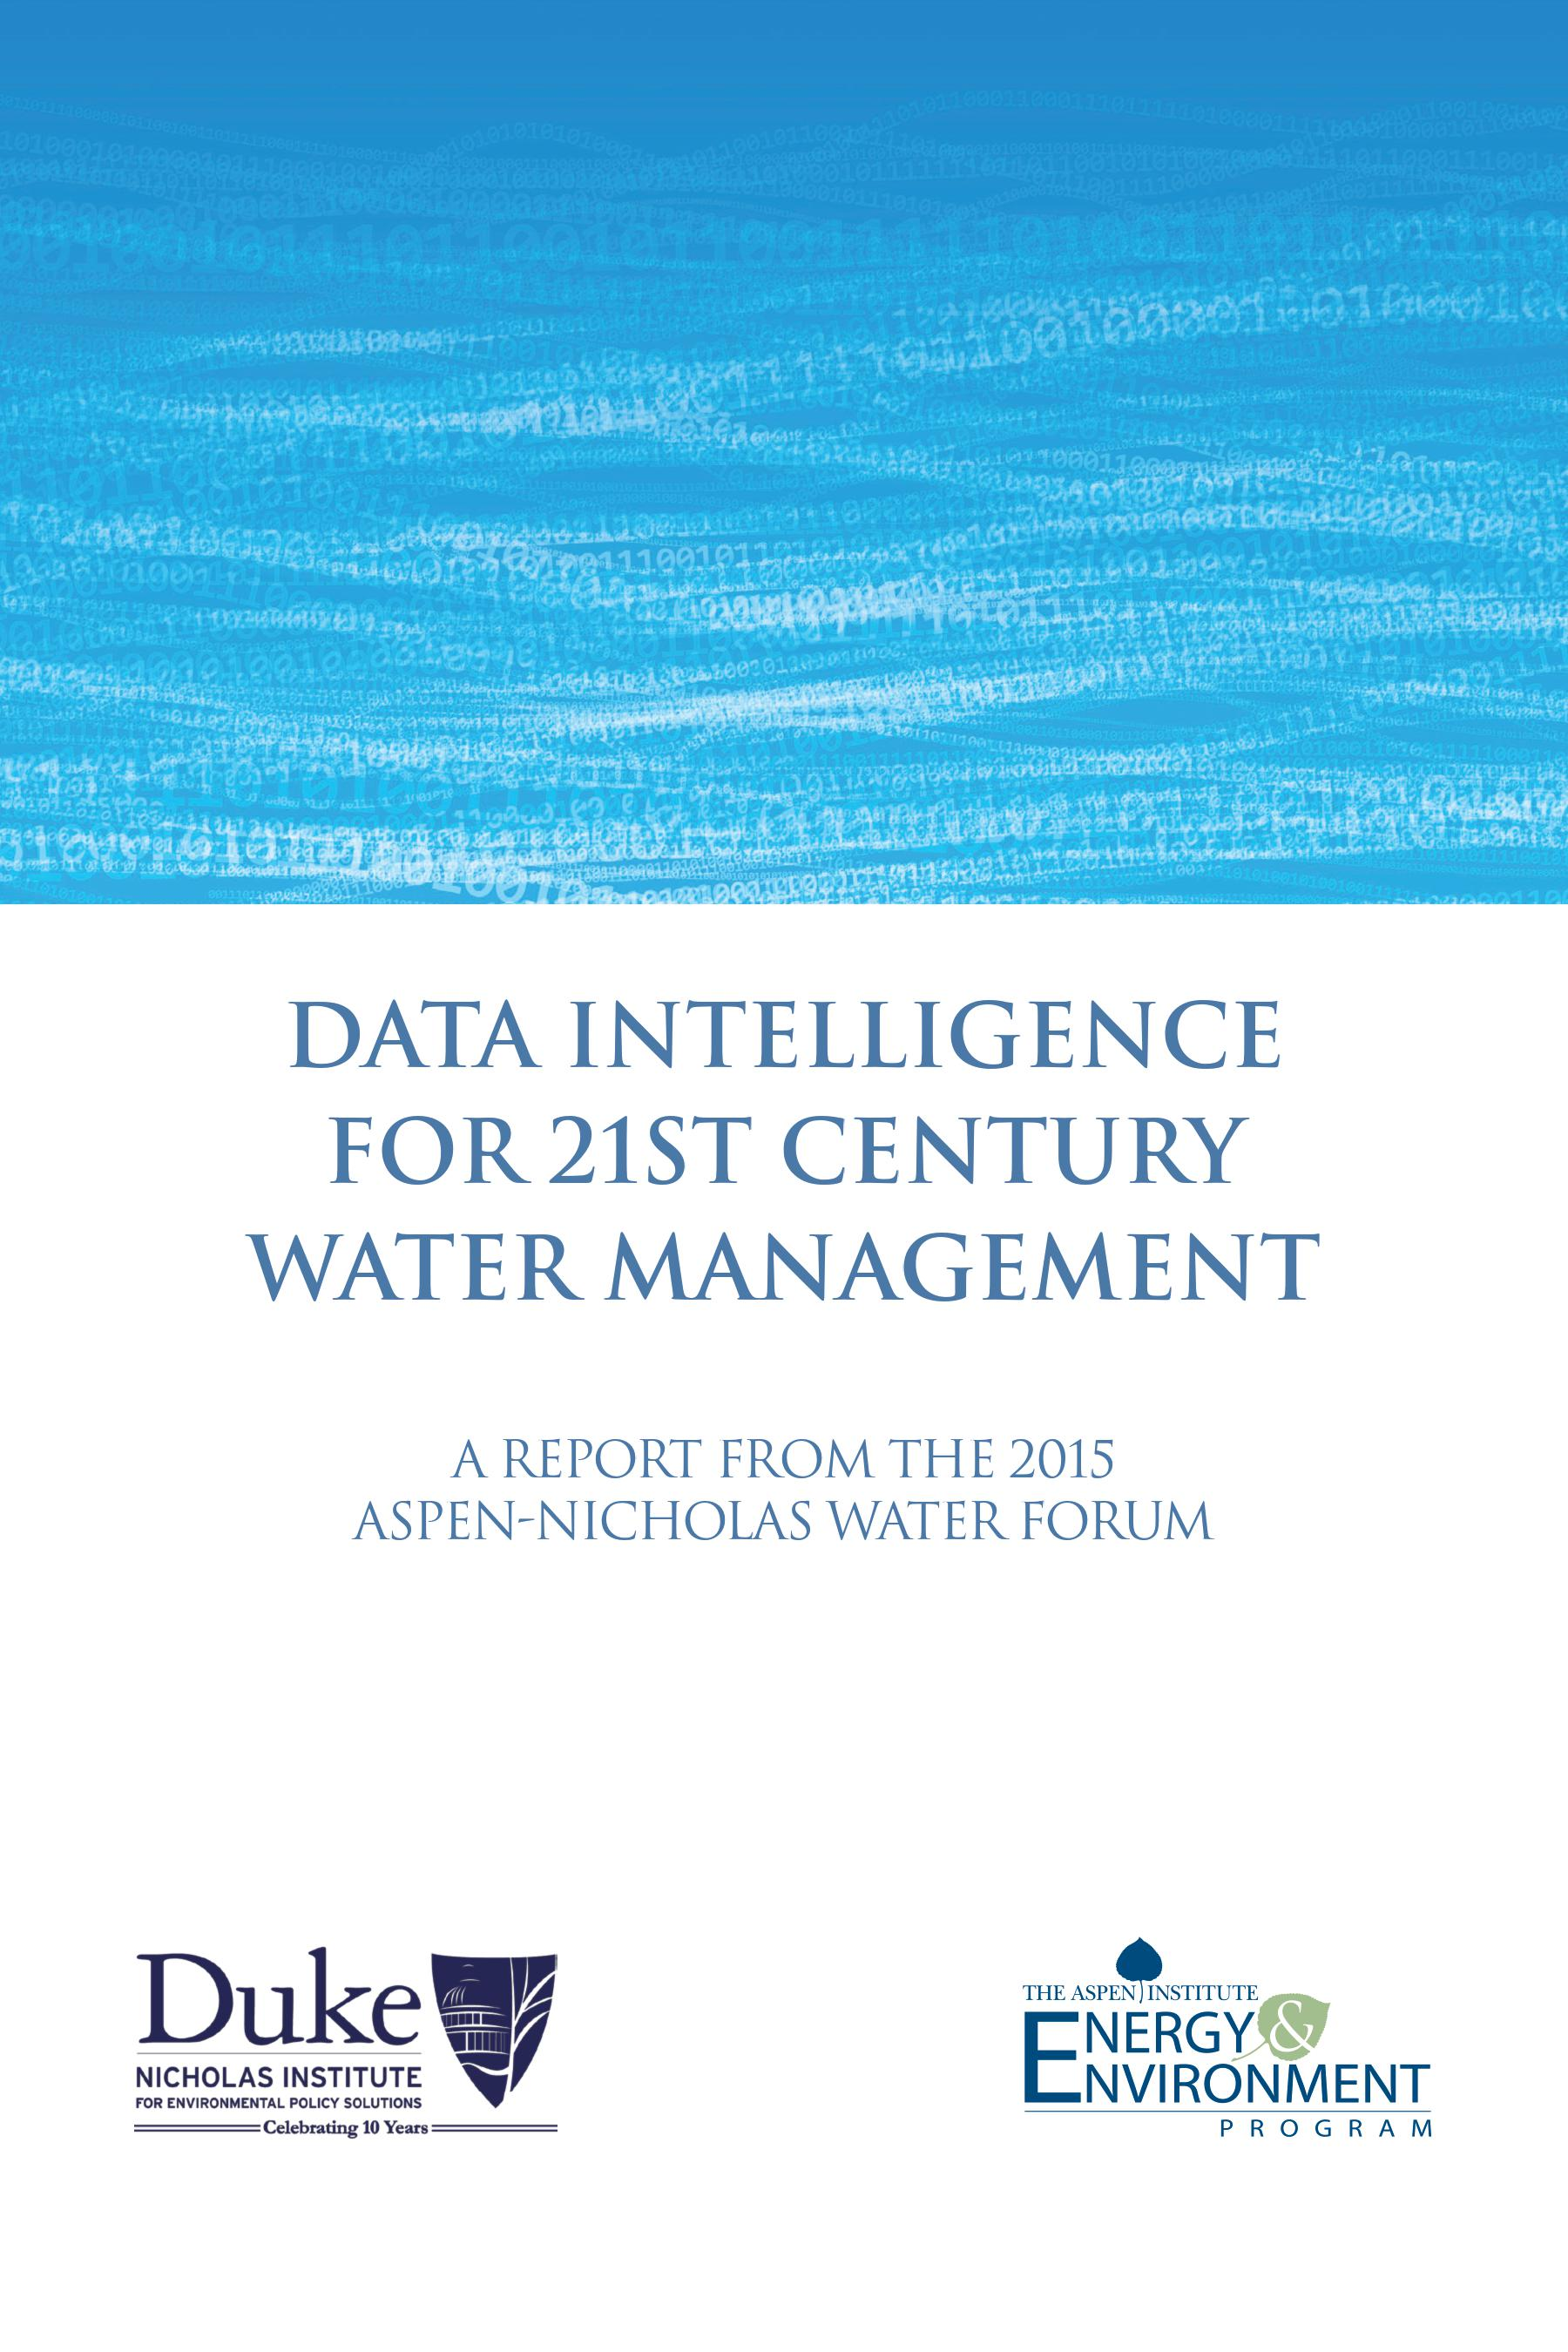 Data Intelligence for 21st Century Water Management